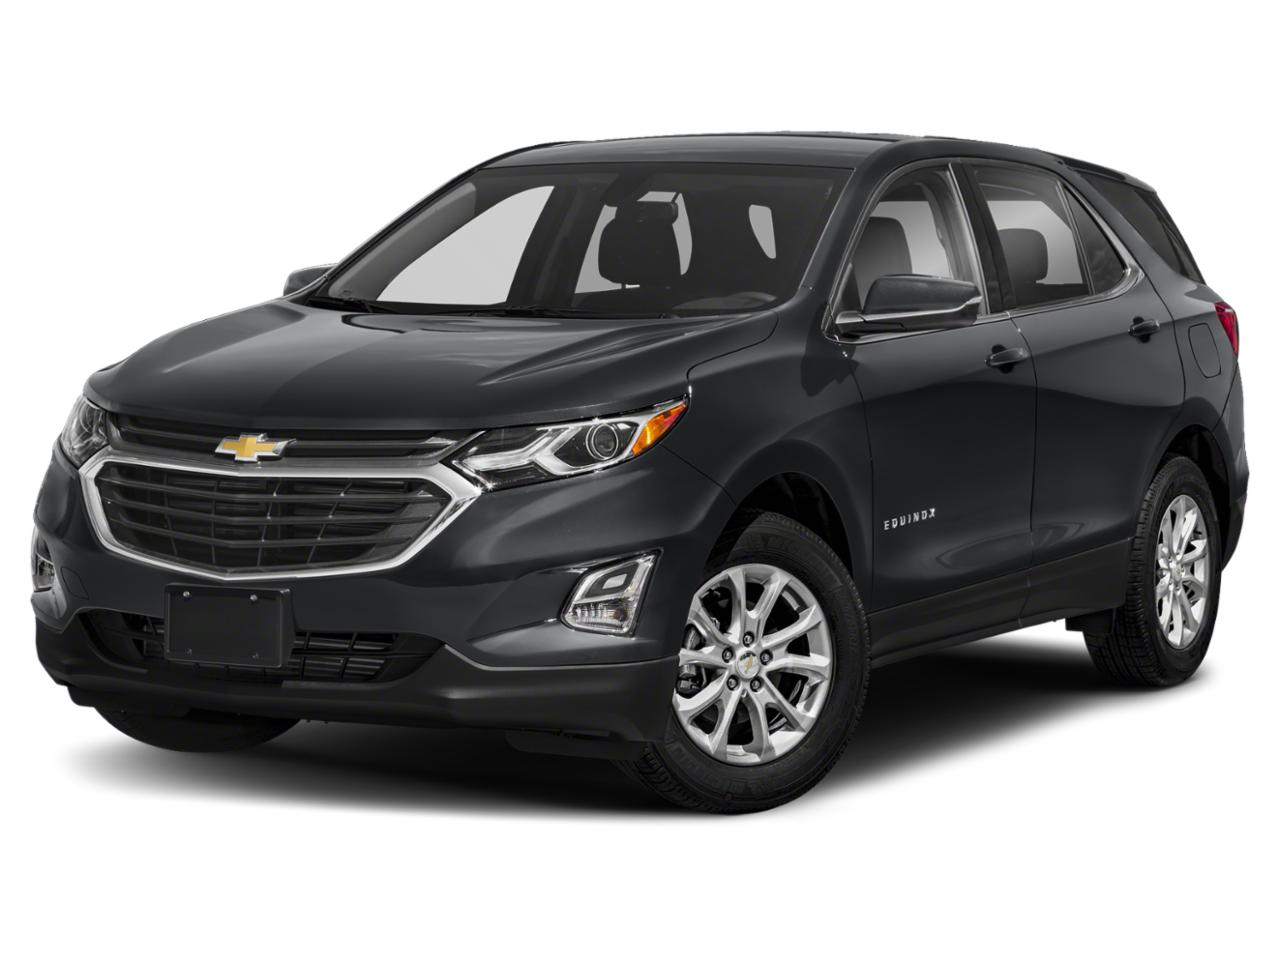 Nightfall Gray Metallic 2020 Chevrolet Equinox LT SUV Lexington NC